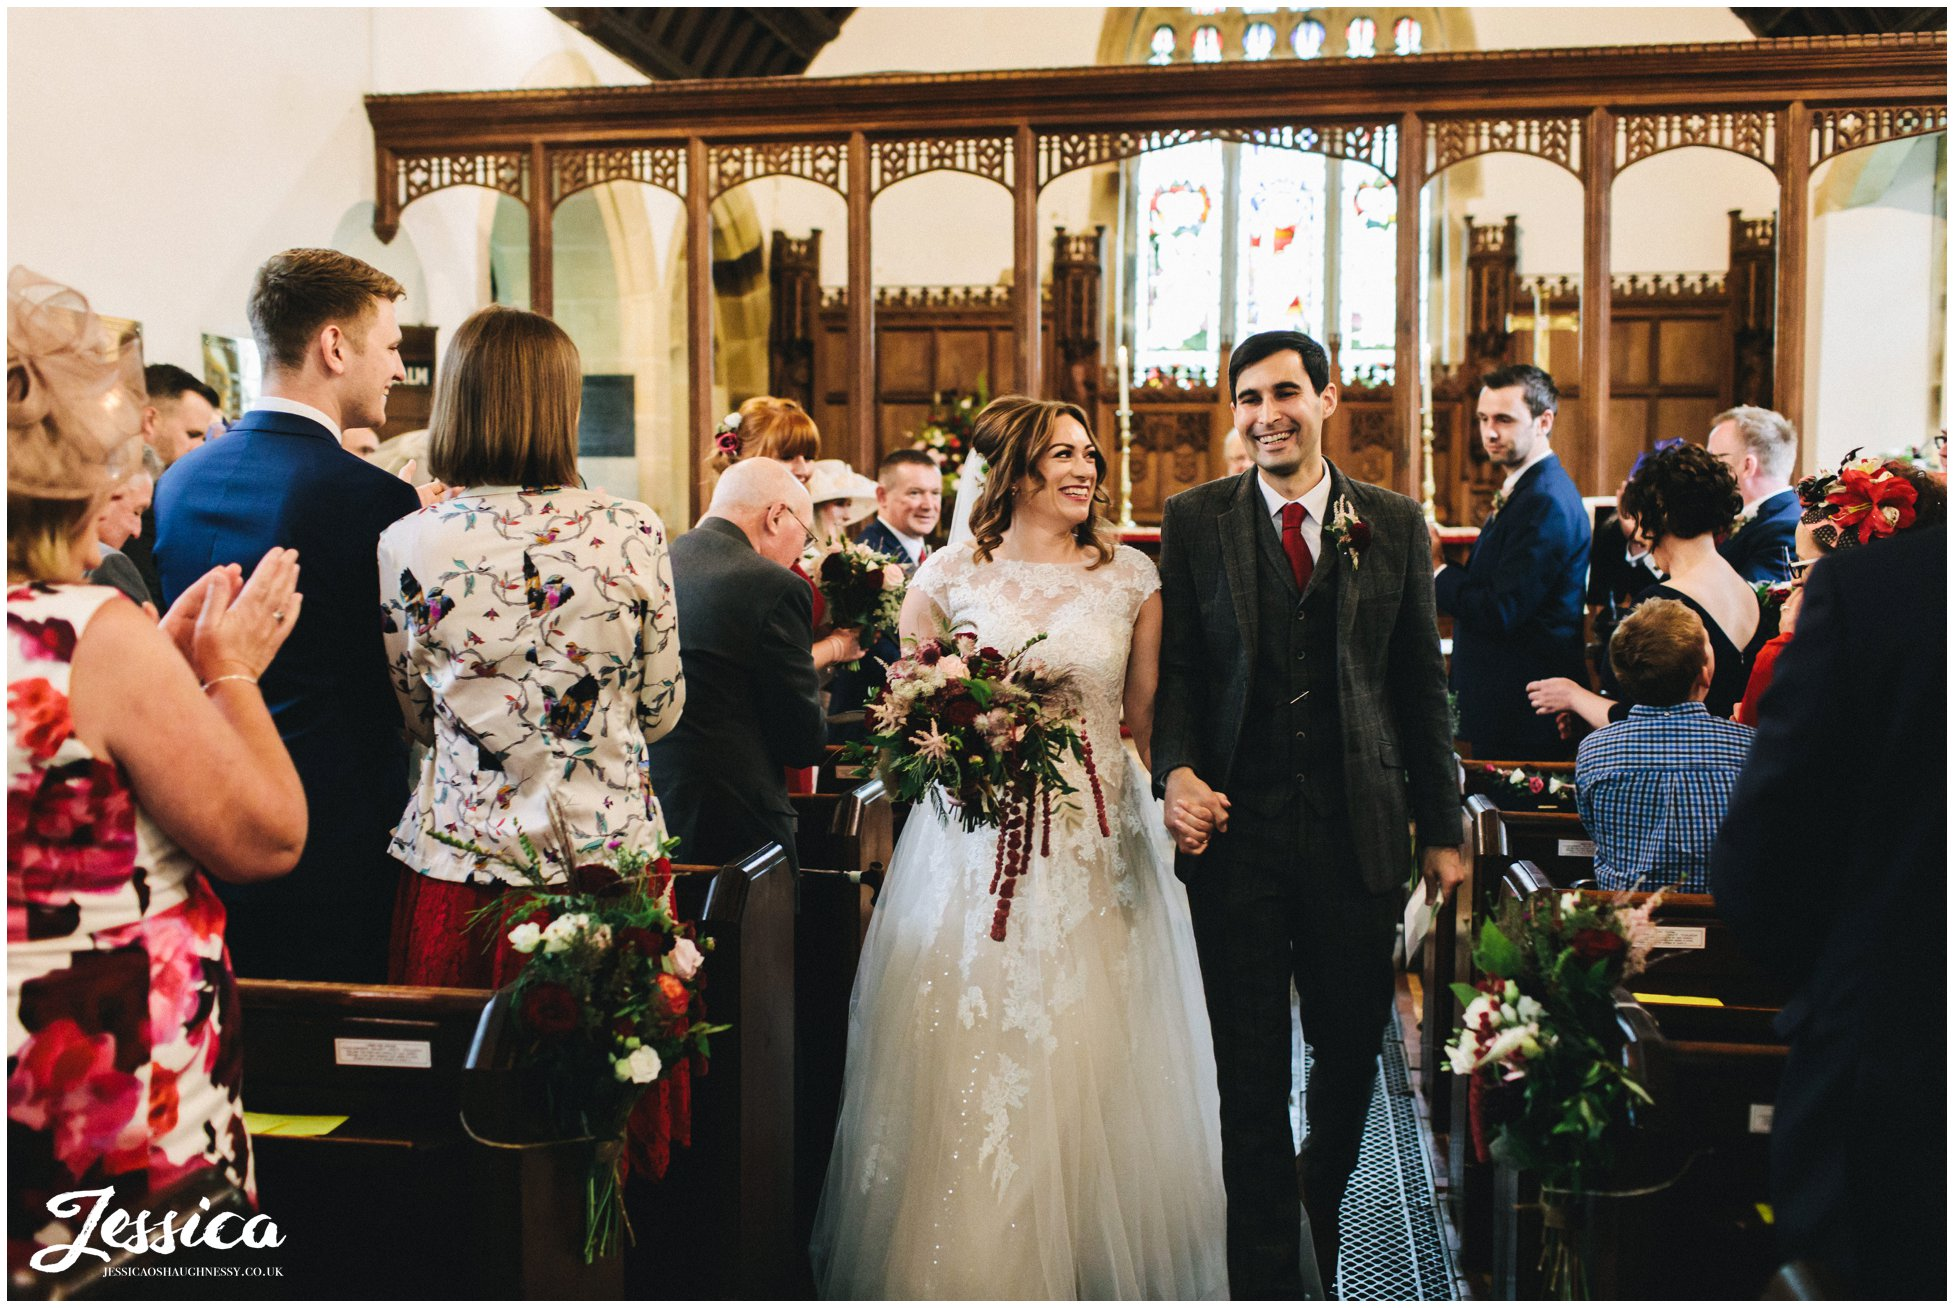 the newly wed's walk down the aisle as husband and wife